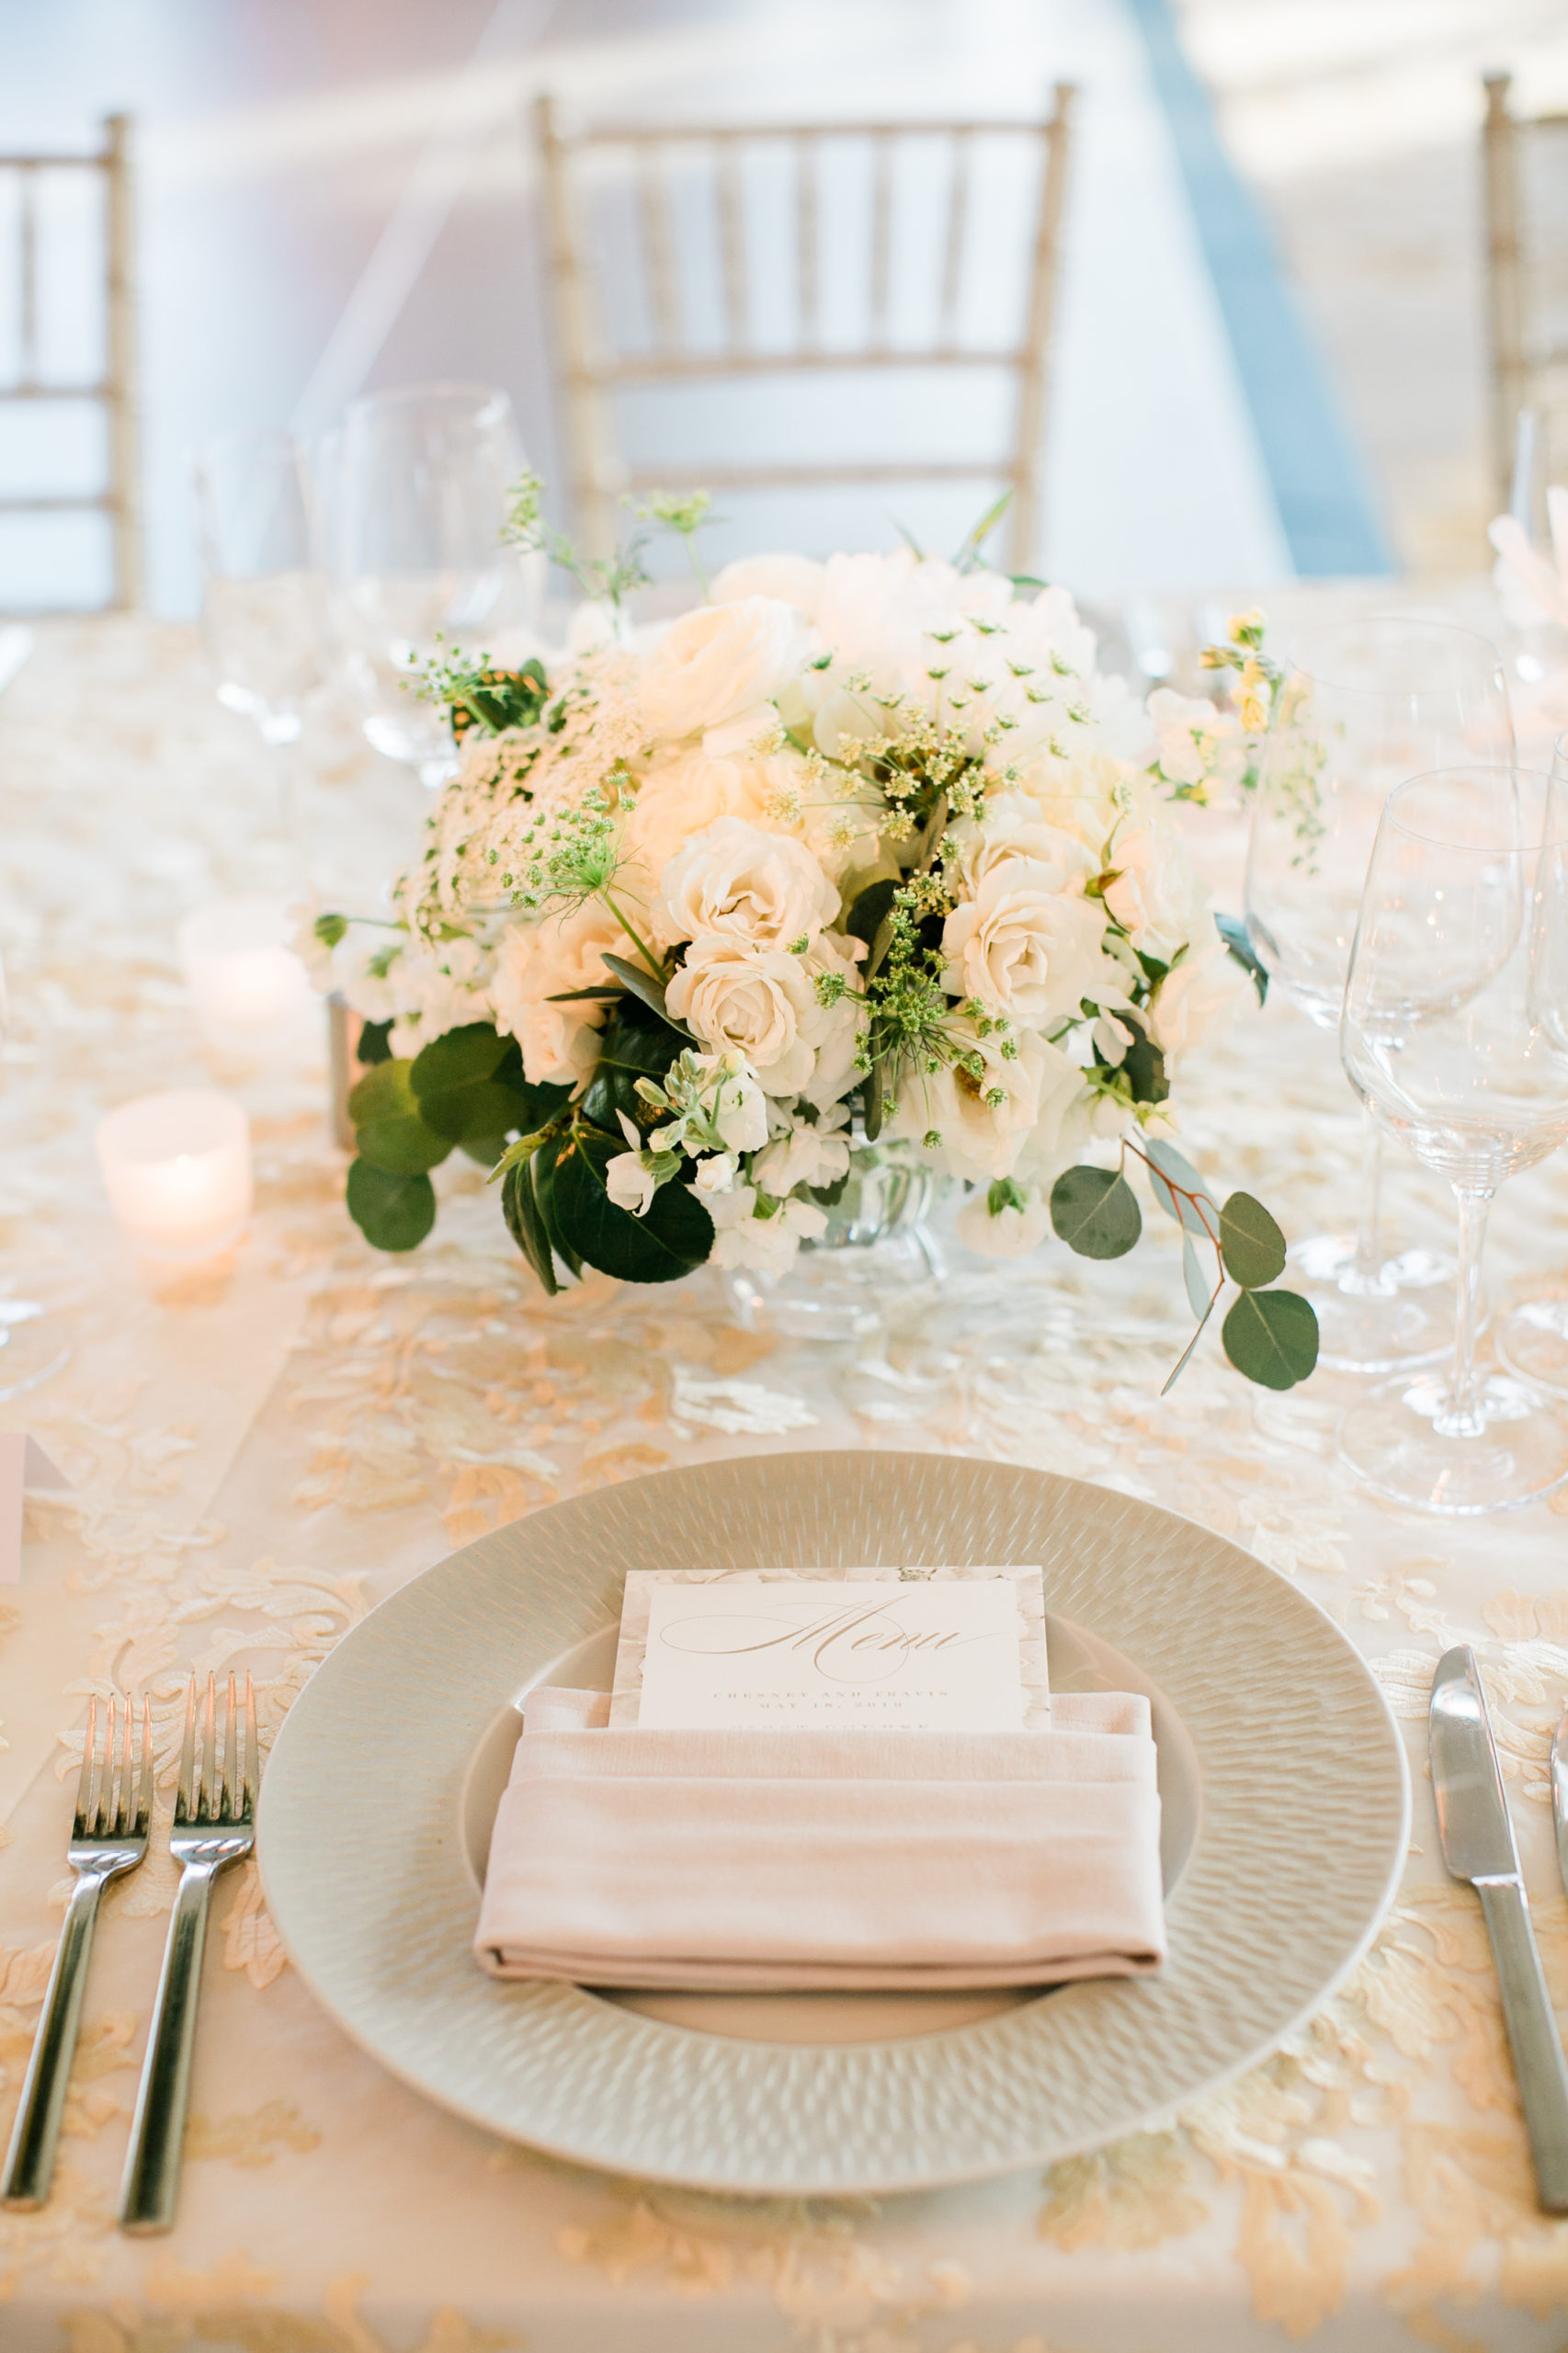 52Chesney_Travis_Intercontinental_Hote_DC_Wharf_Wedding_AstridPhotographyAP_05843